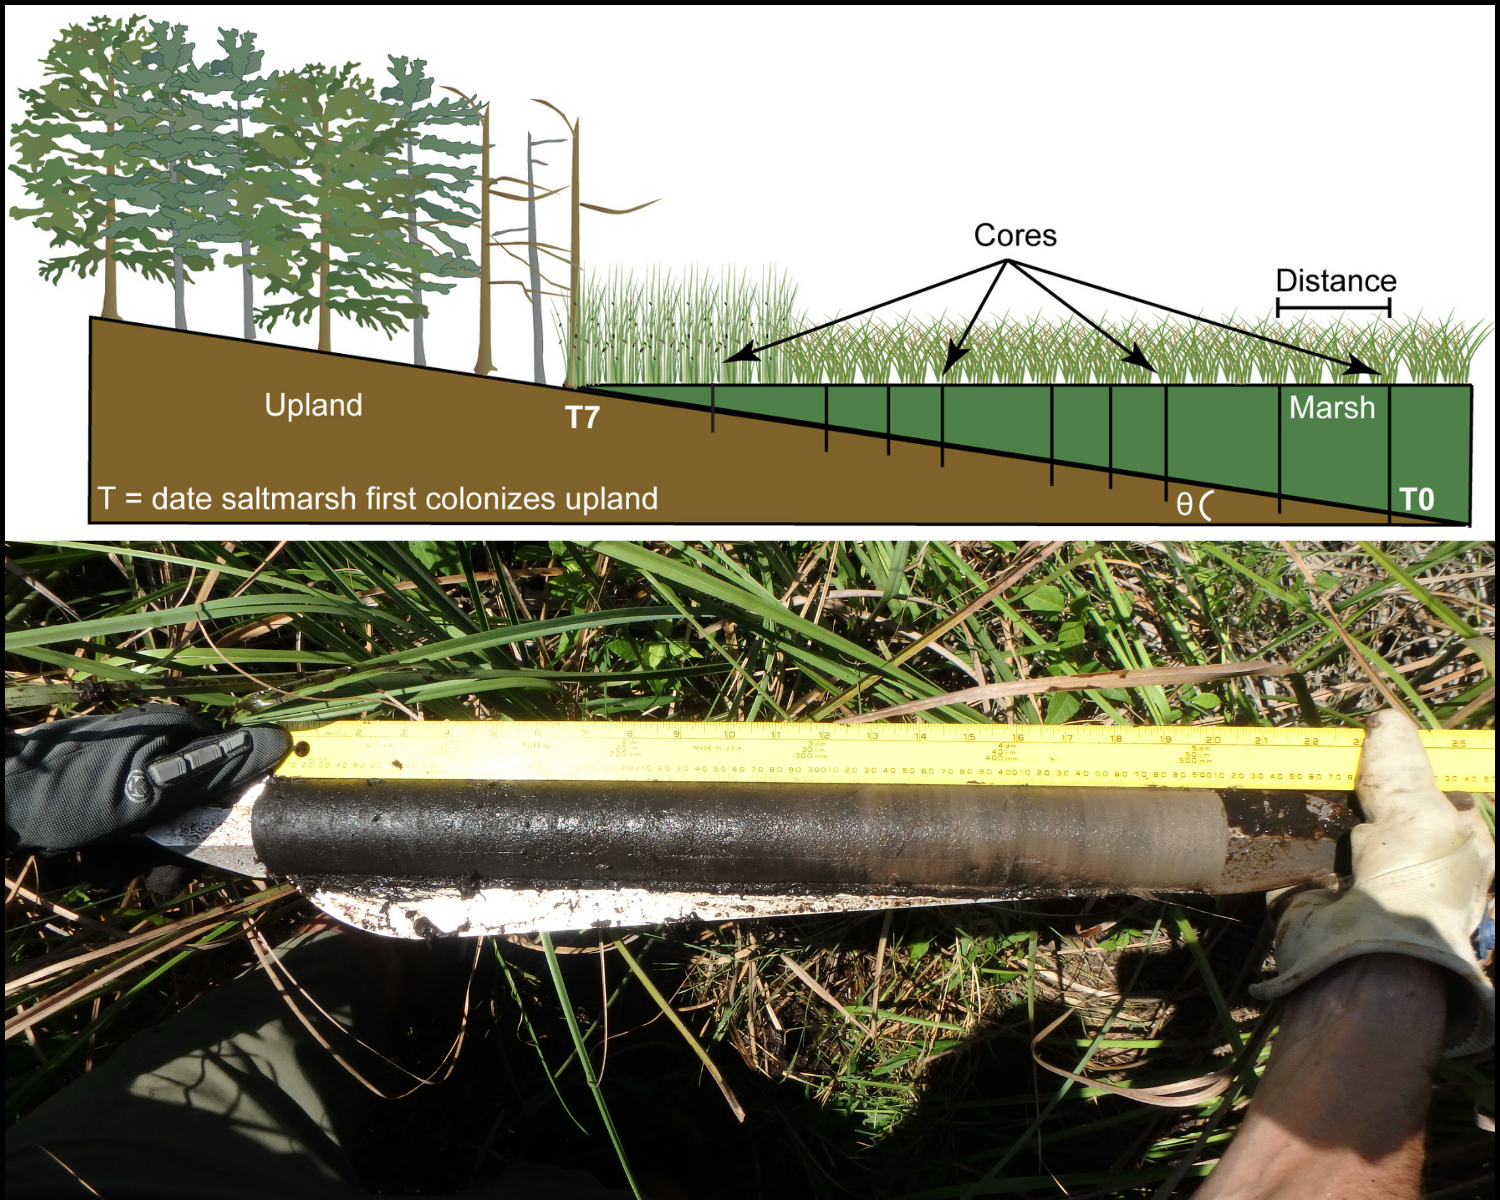 An illustration of salt marsh transgression and core sample placement, and a photo showing a core sample of upland forest peat.